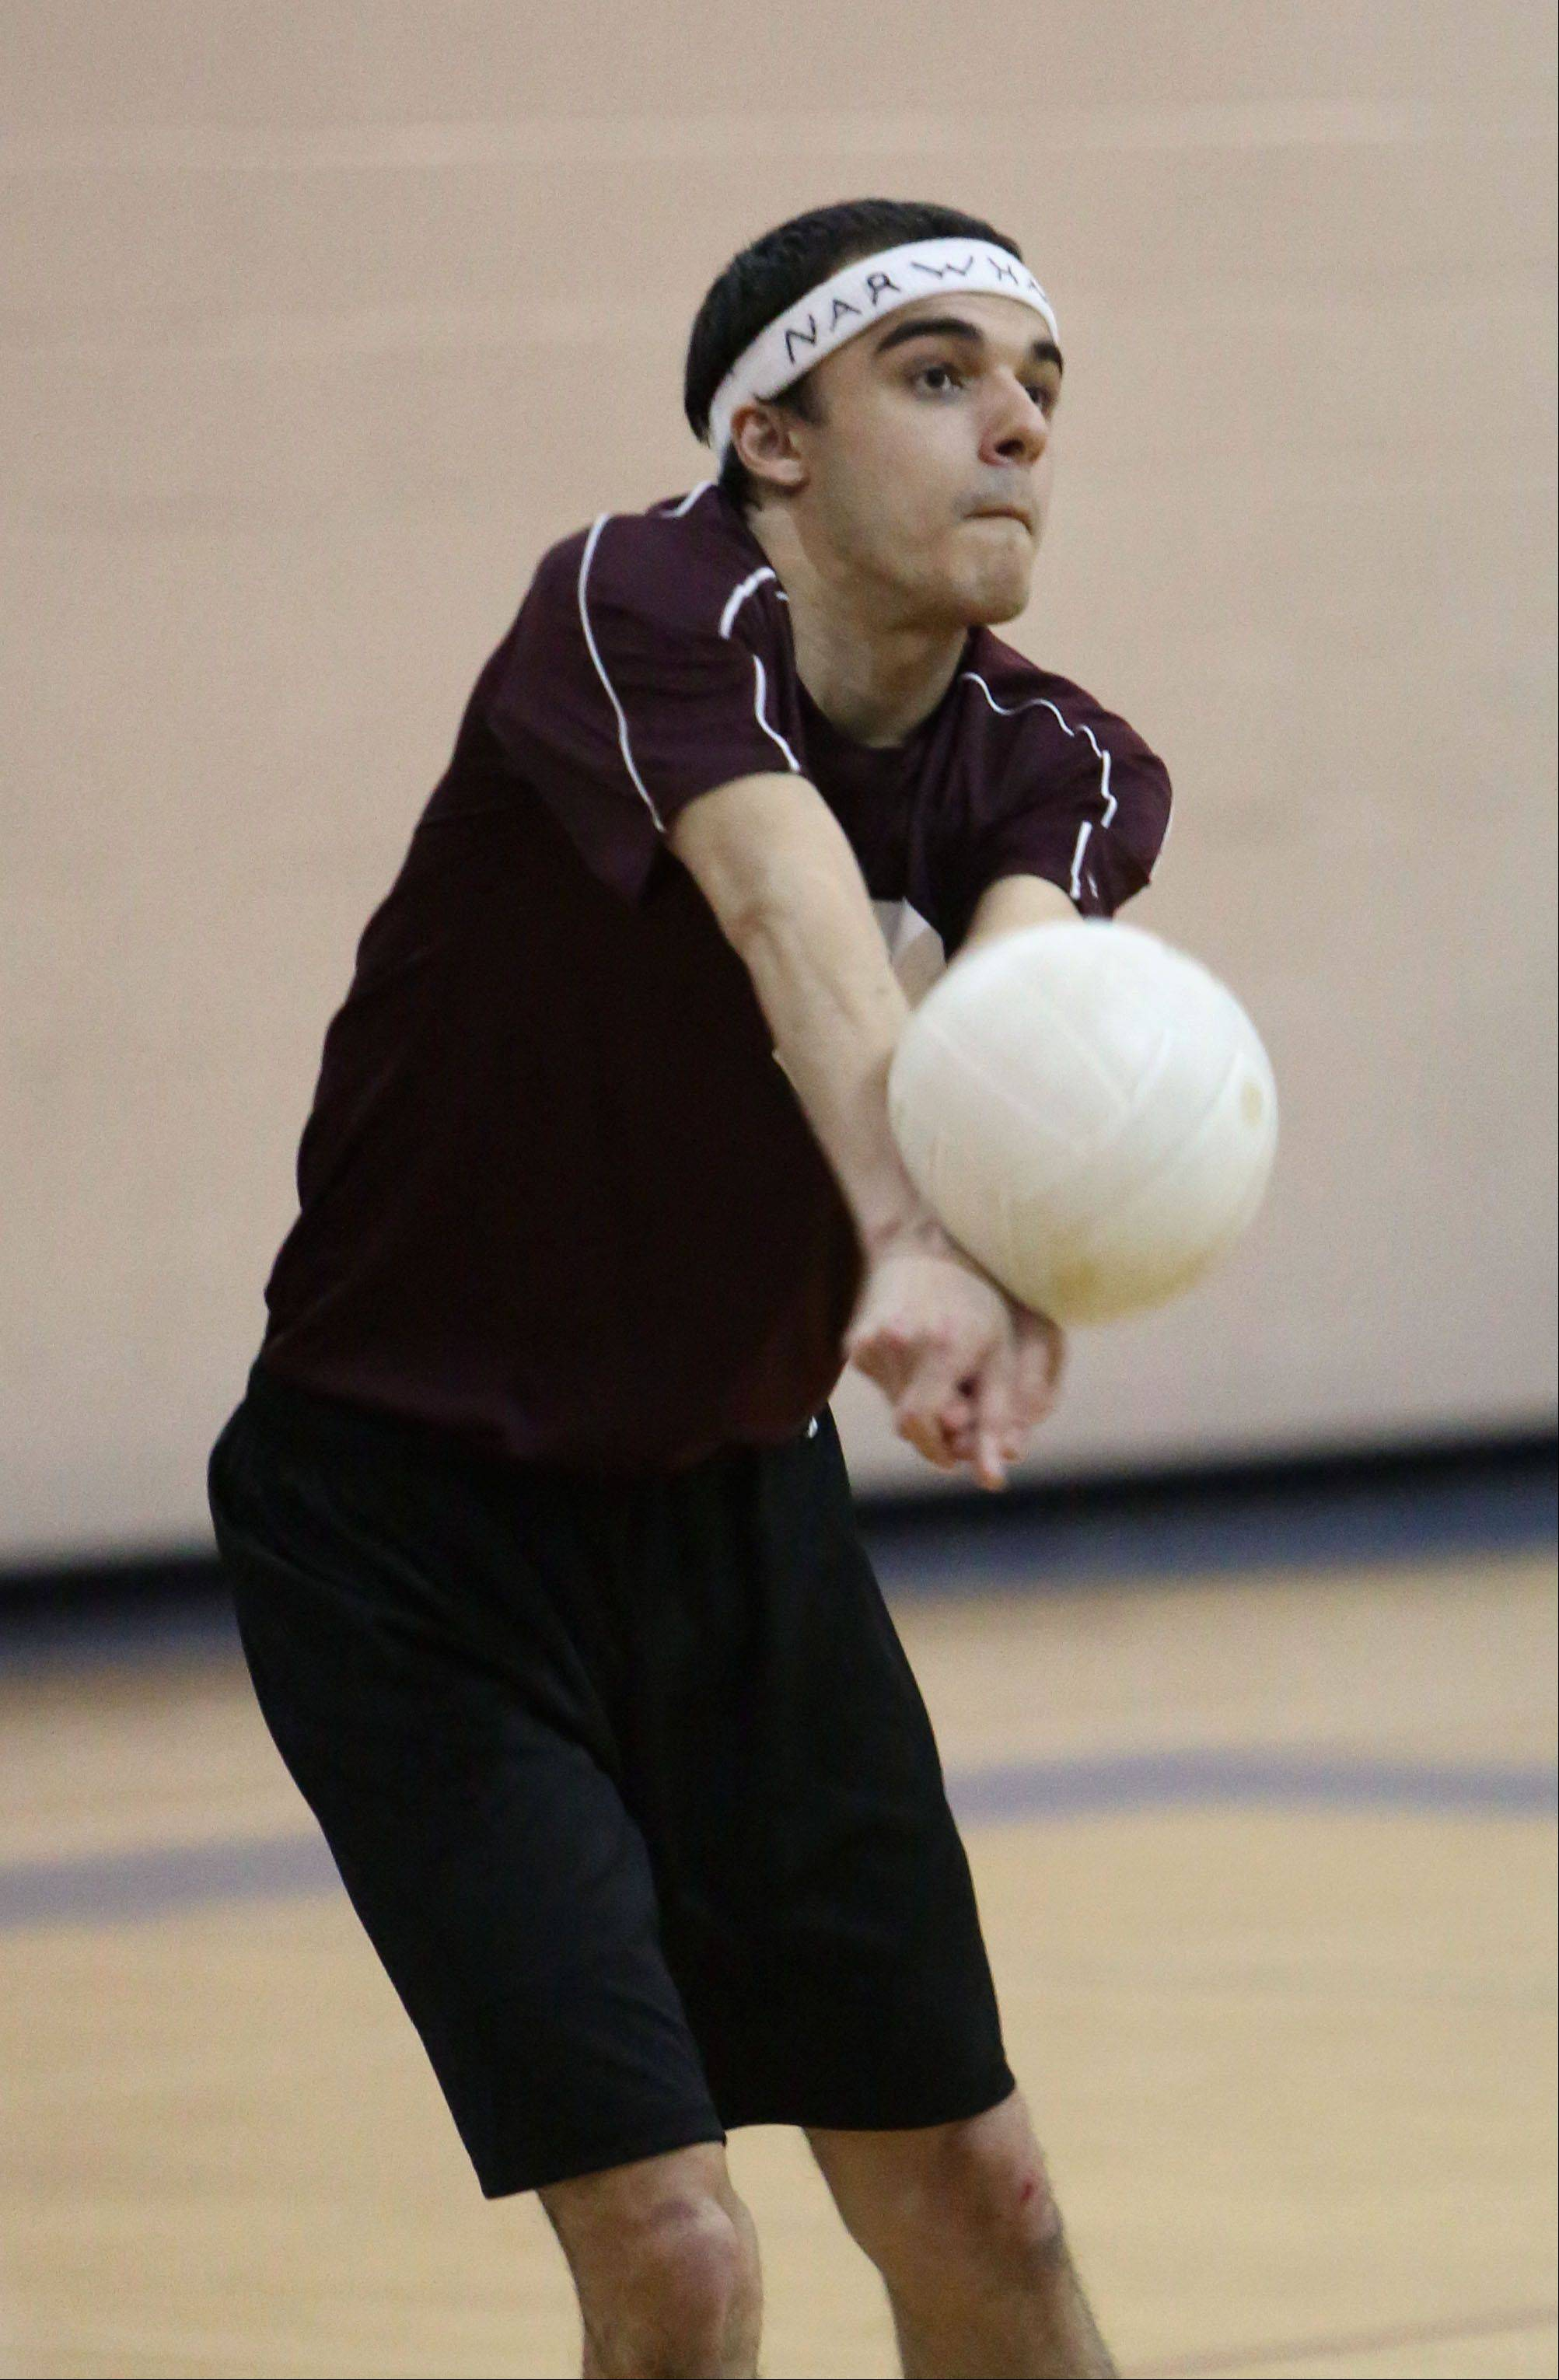 Antioch's Ian Keller returns a serve during their game Wednesday night at Lakes High School.